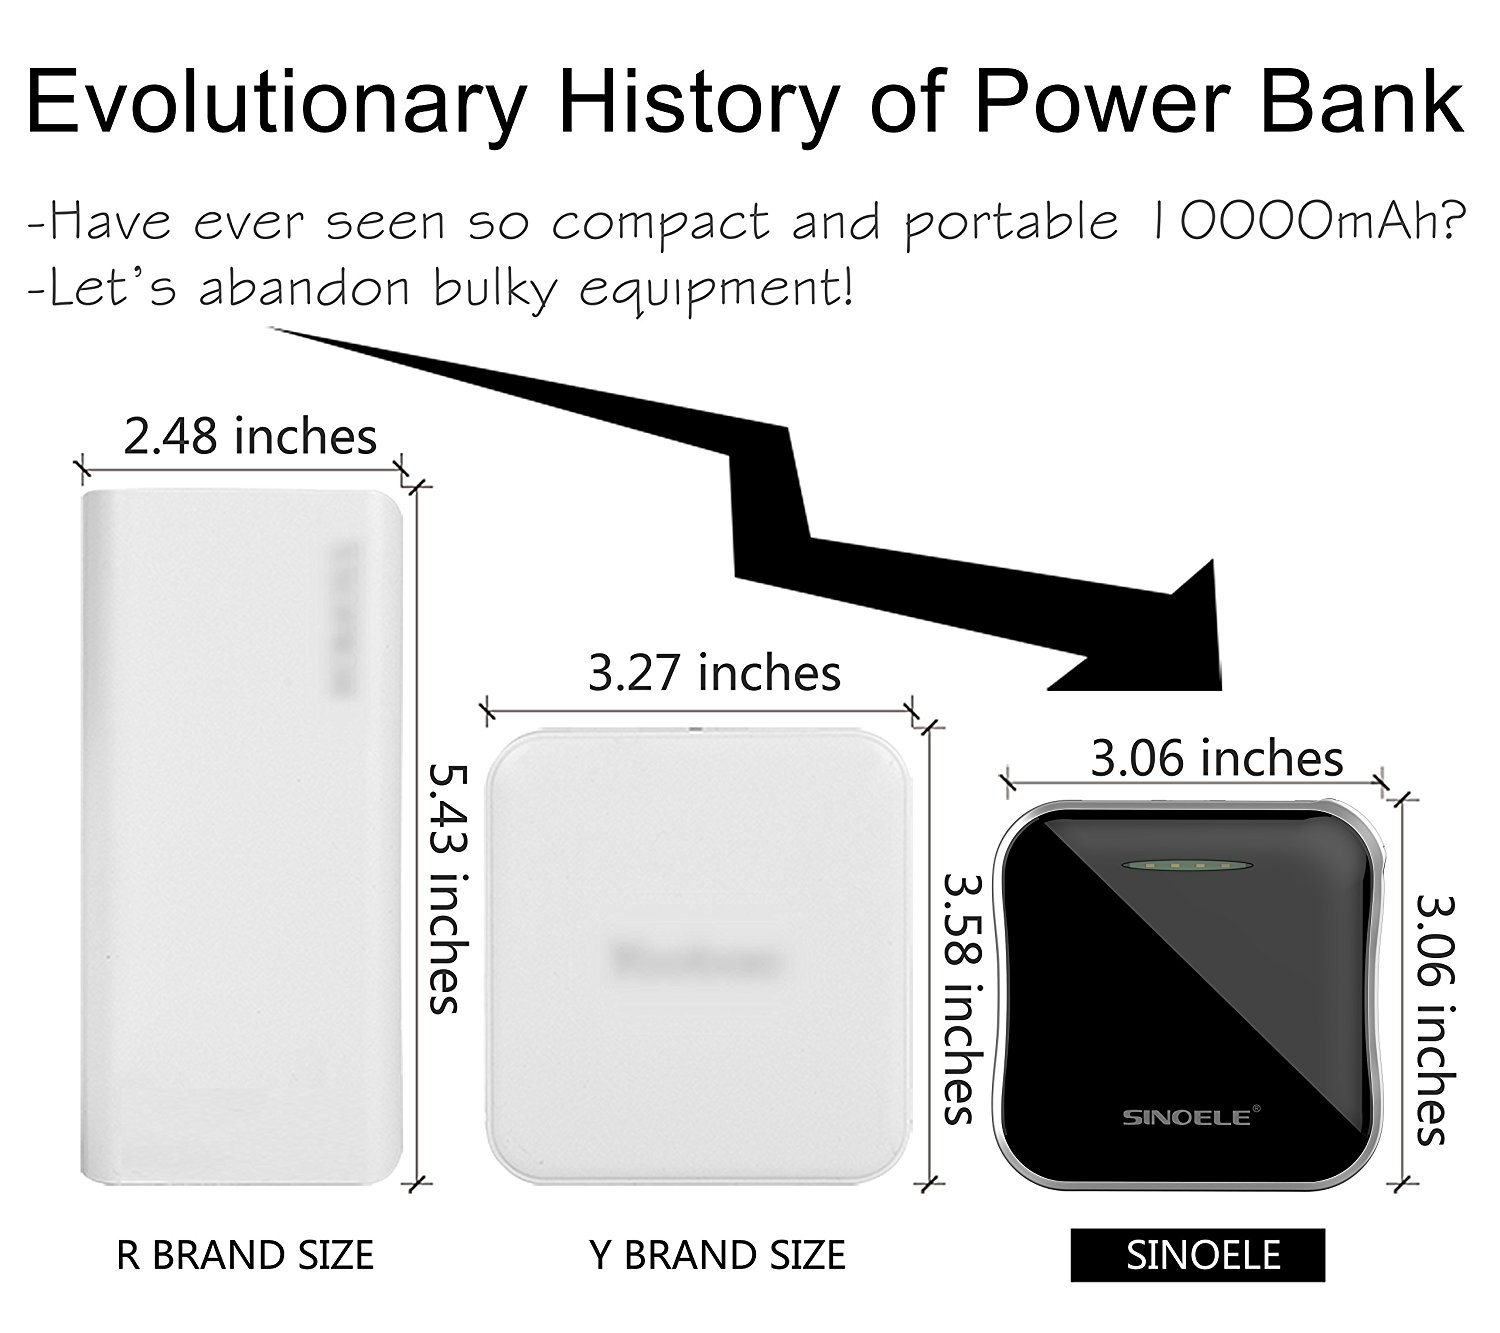 Sinoele Power Bank Portable Mobile Phone Charger External Battery How To Build A Friendly Schematic For Phones Dual Usb Universal 10000mah Iphoneipadsamsung Black